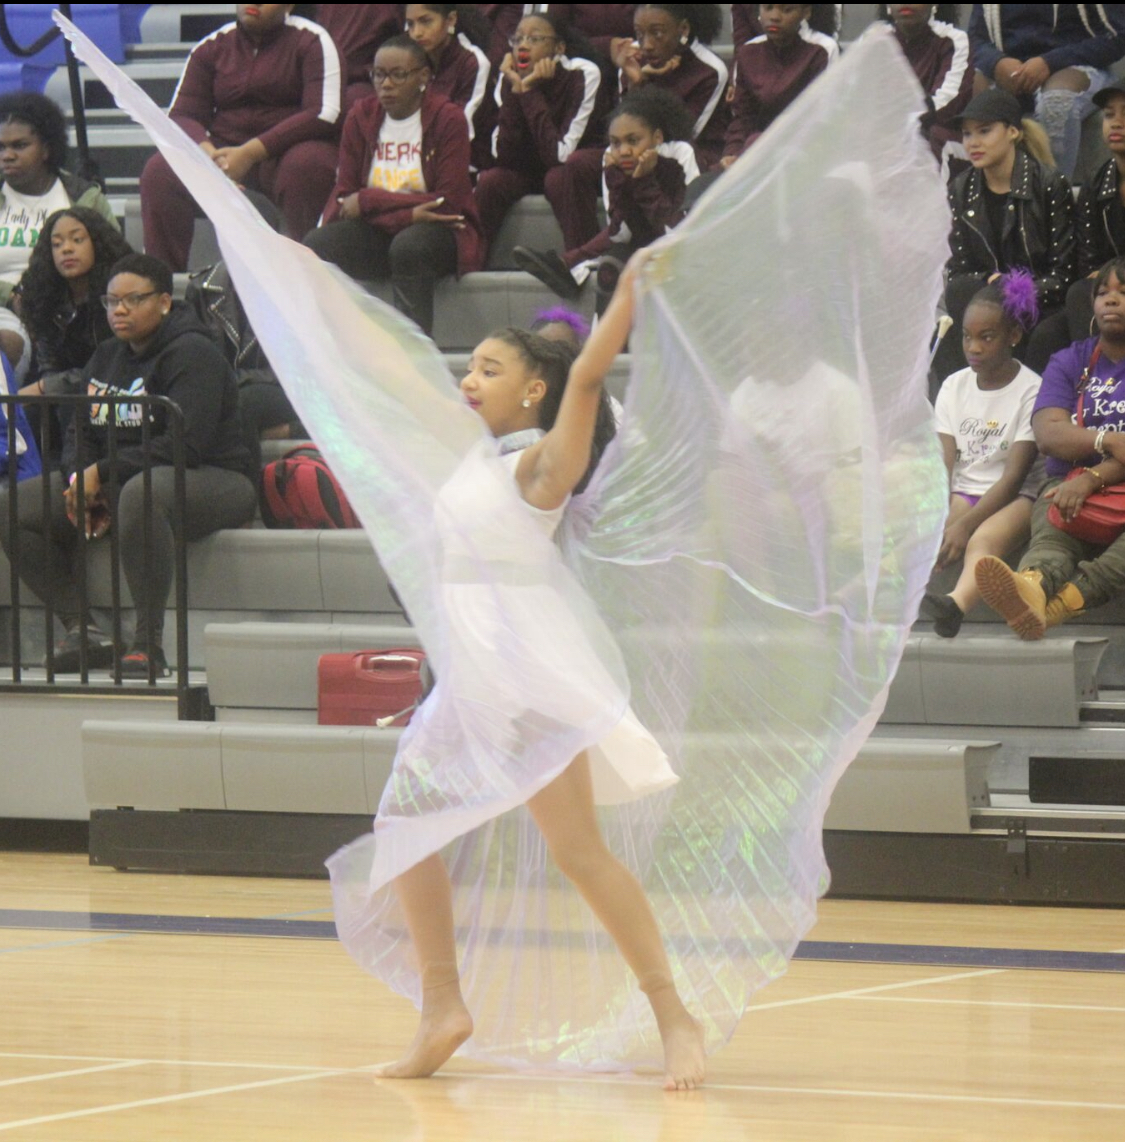 Performer at competition